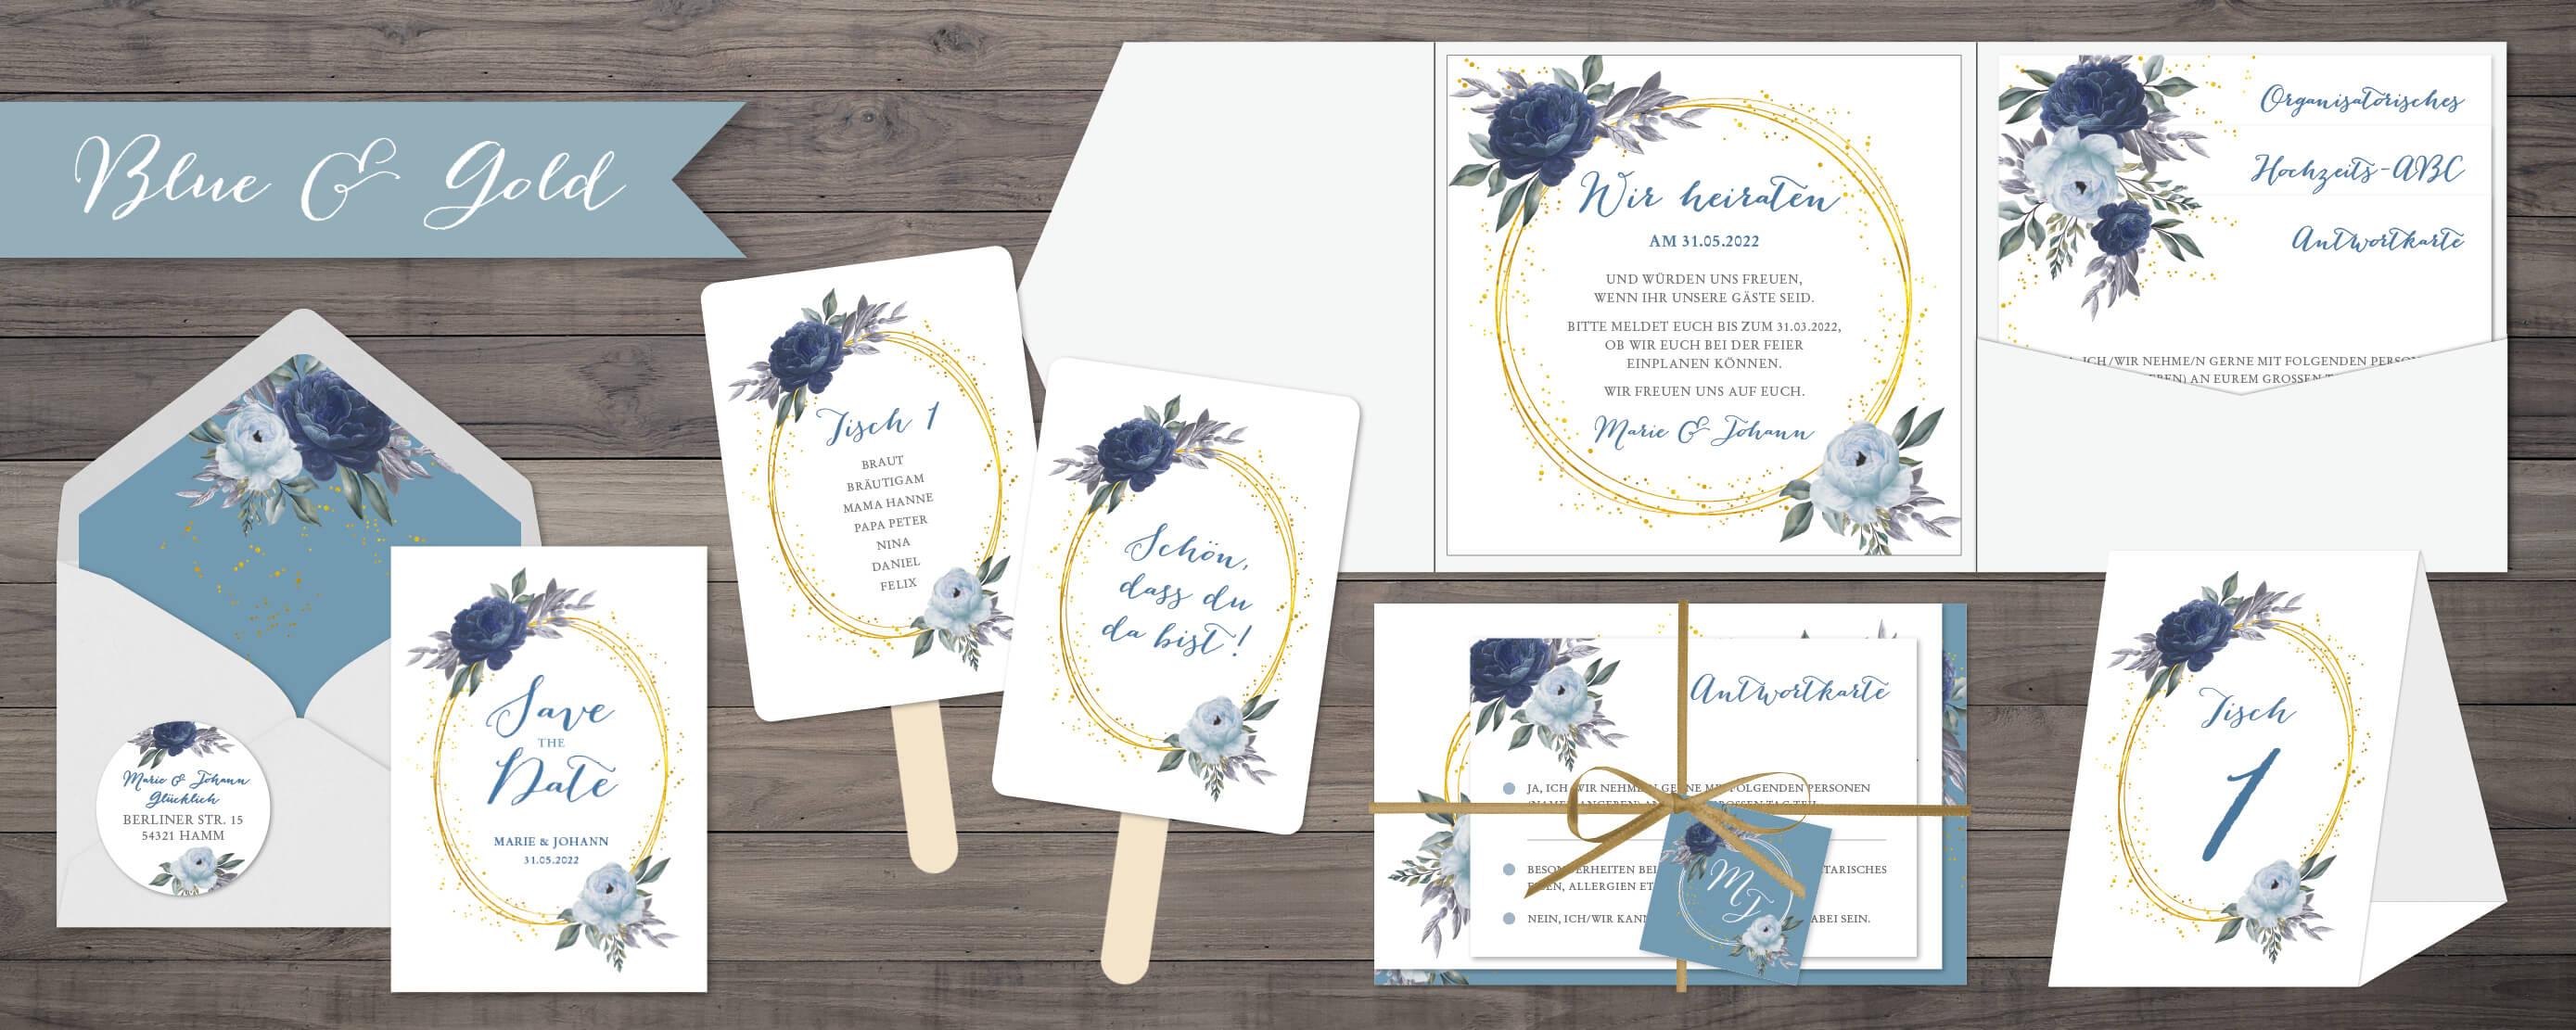 designserie Blue and Gold